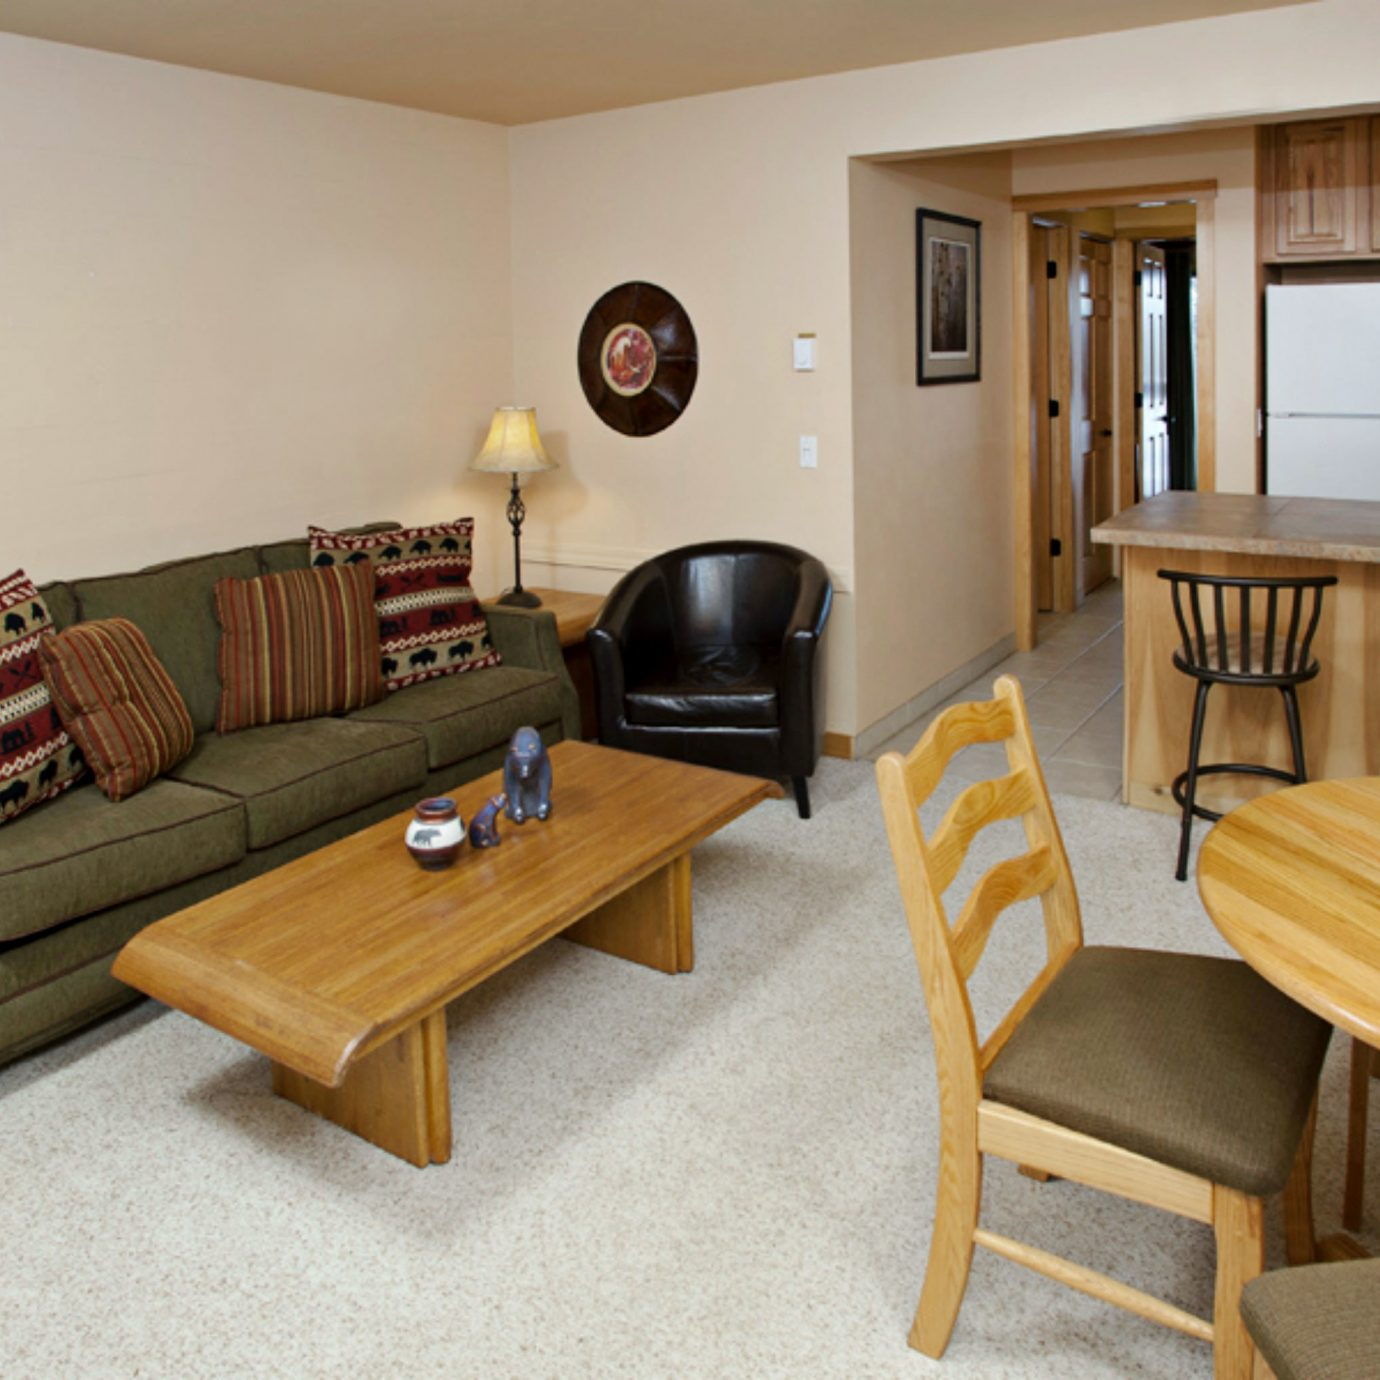 Dining Lounge Resort chair property living room home hardwood cottage wooden Suite recreation room leather dining table